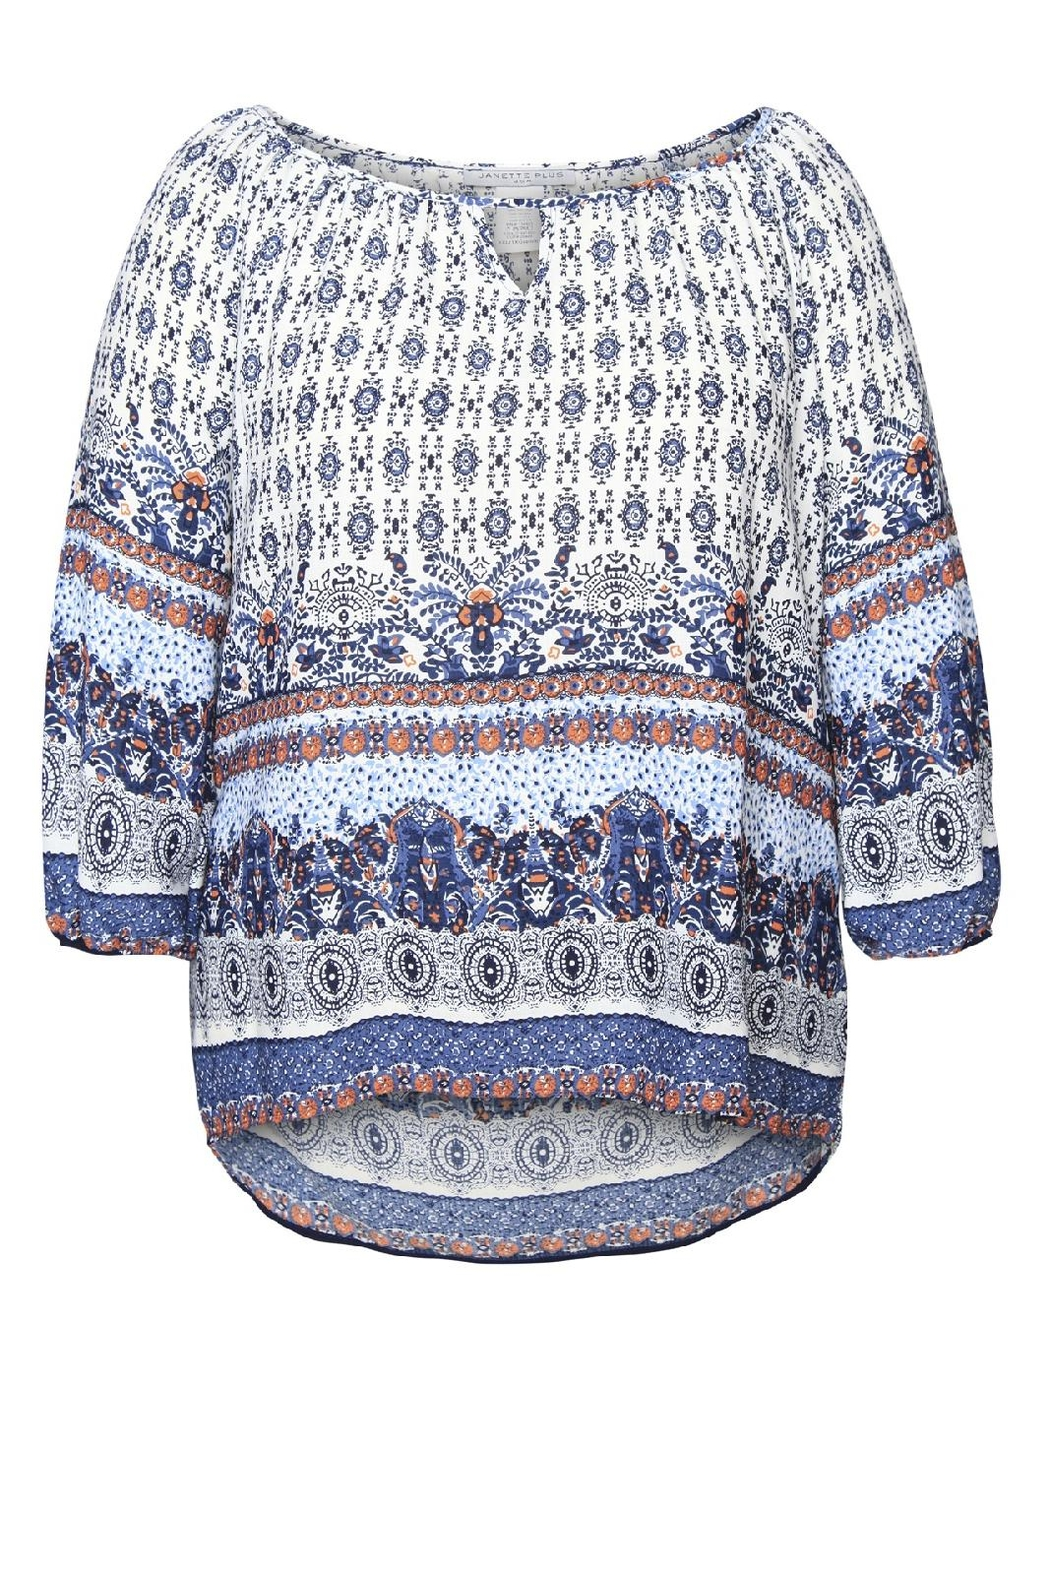 Dex/Black Tape Printed Boho Blouse - Front Cropped Image